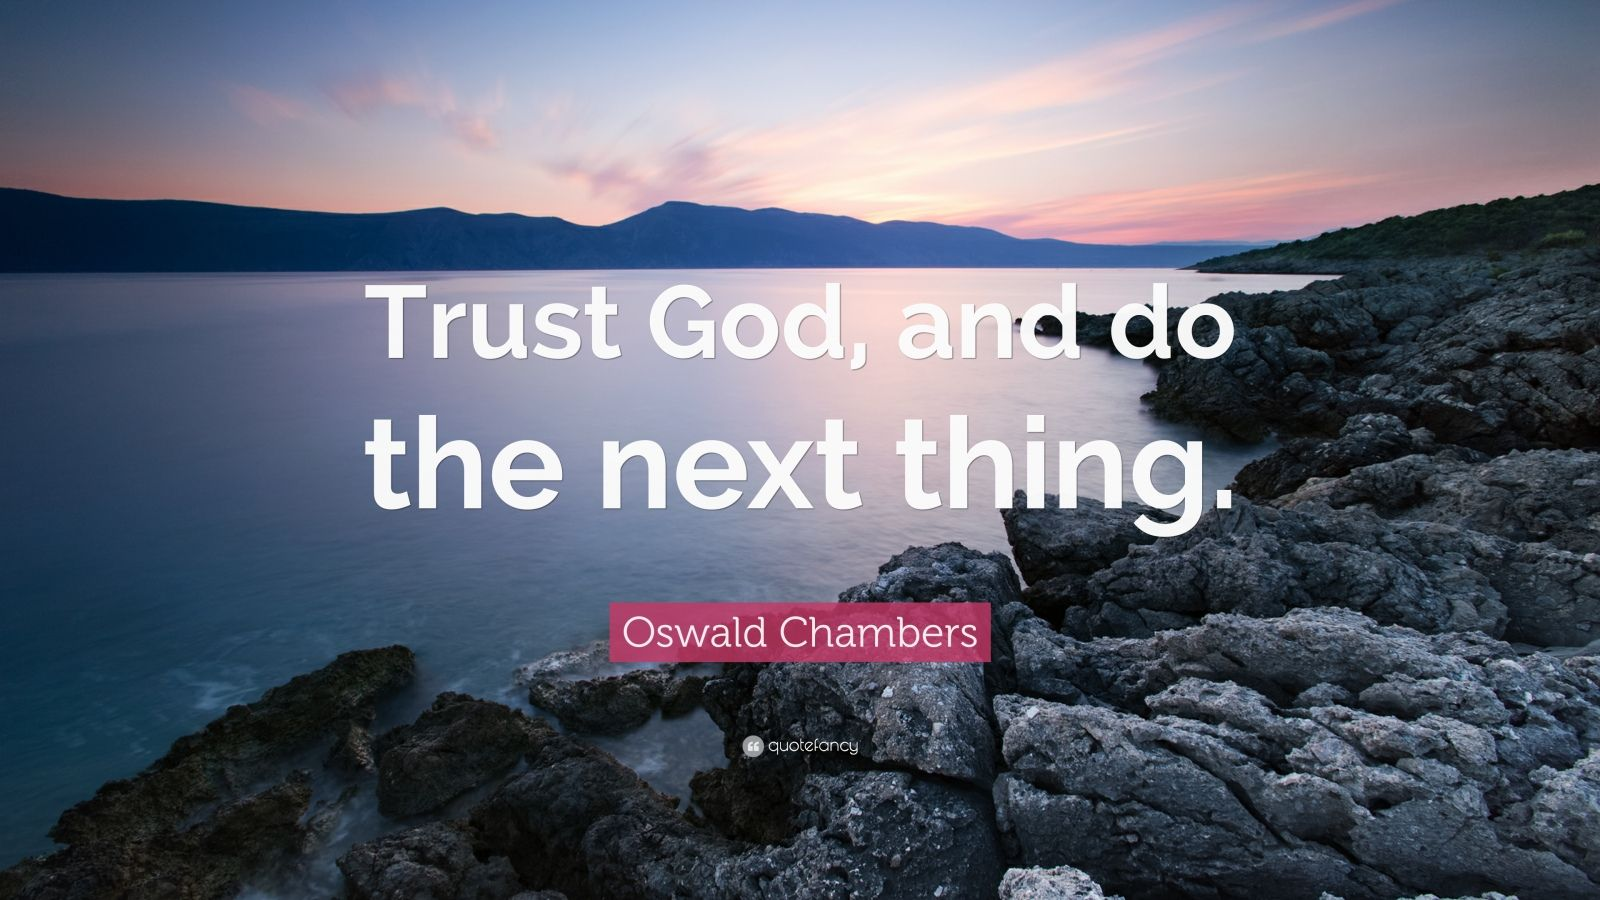 Oswald Chambers Quotes 100 Wallpapers Quotefancy